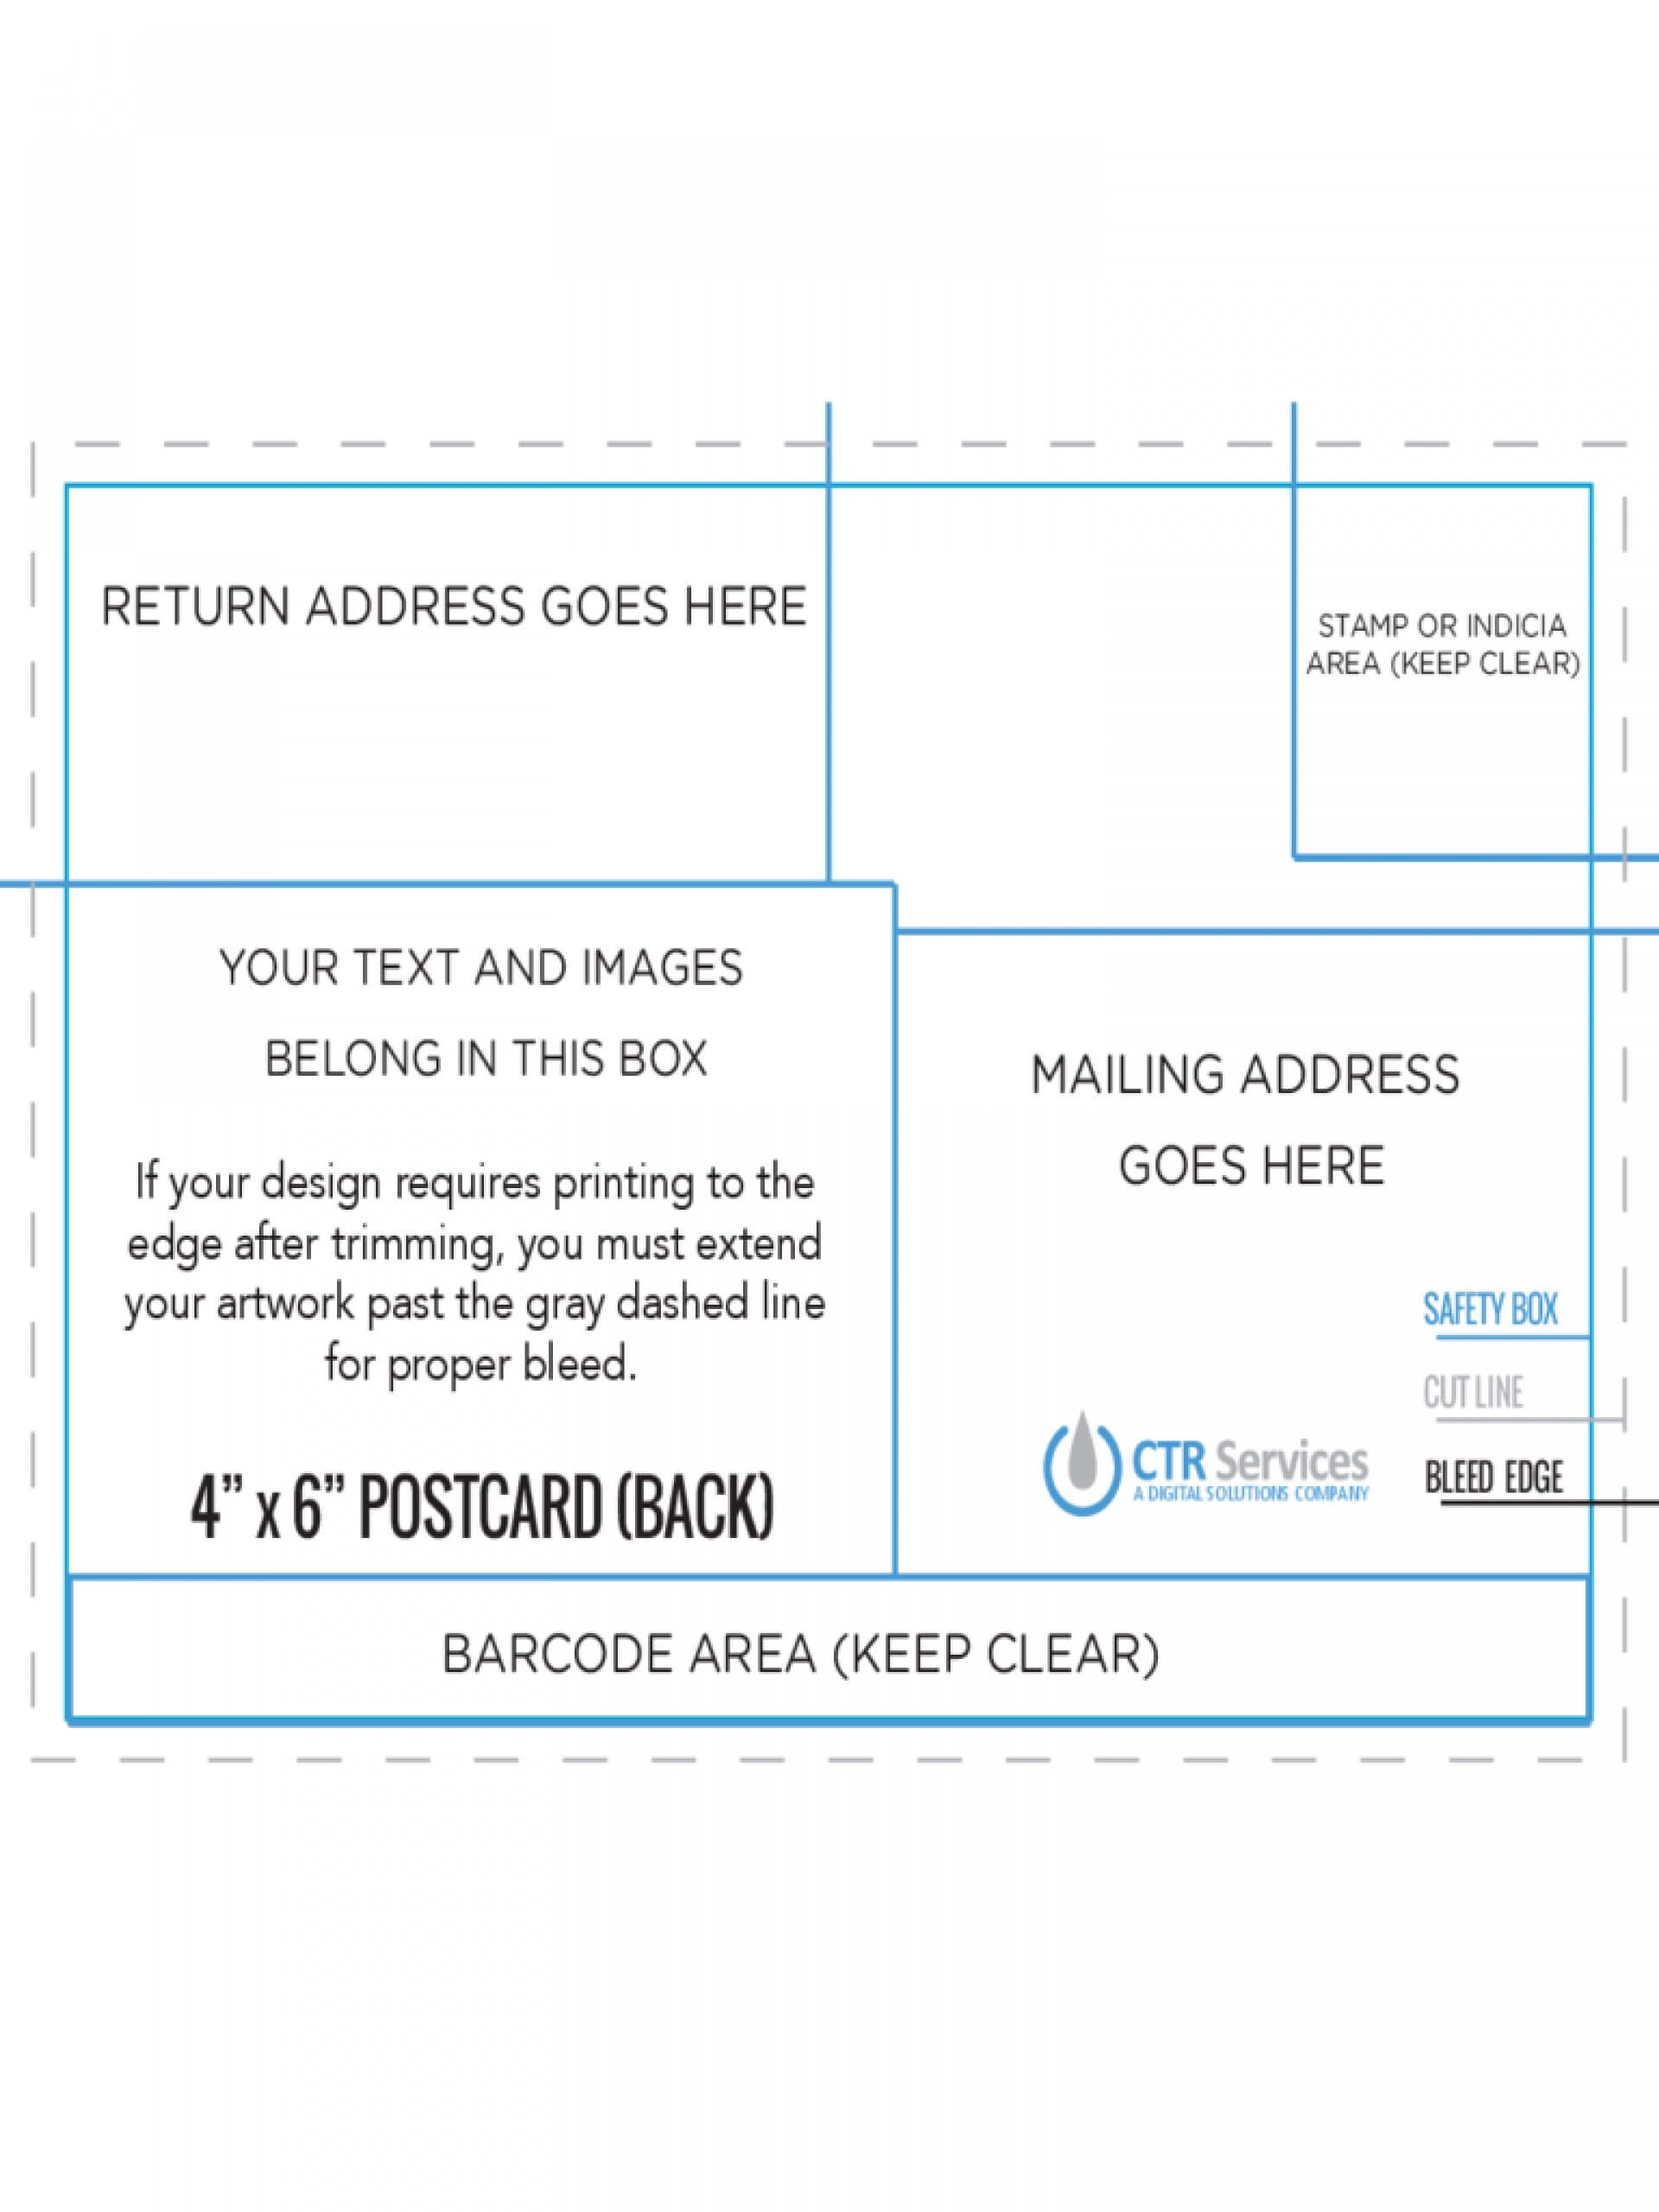 022 Free X Templates And Postcard Back Template Rare 4 6 With Regard To 4 X 6 Postcard Template